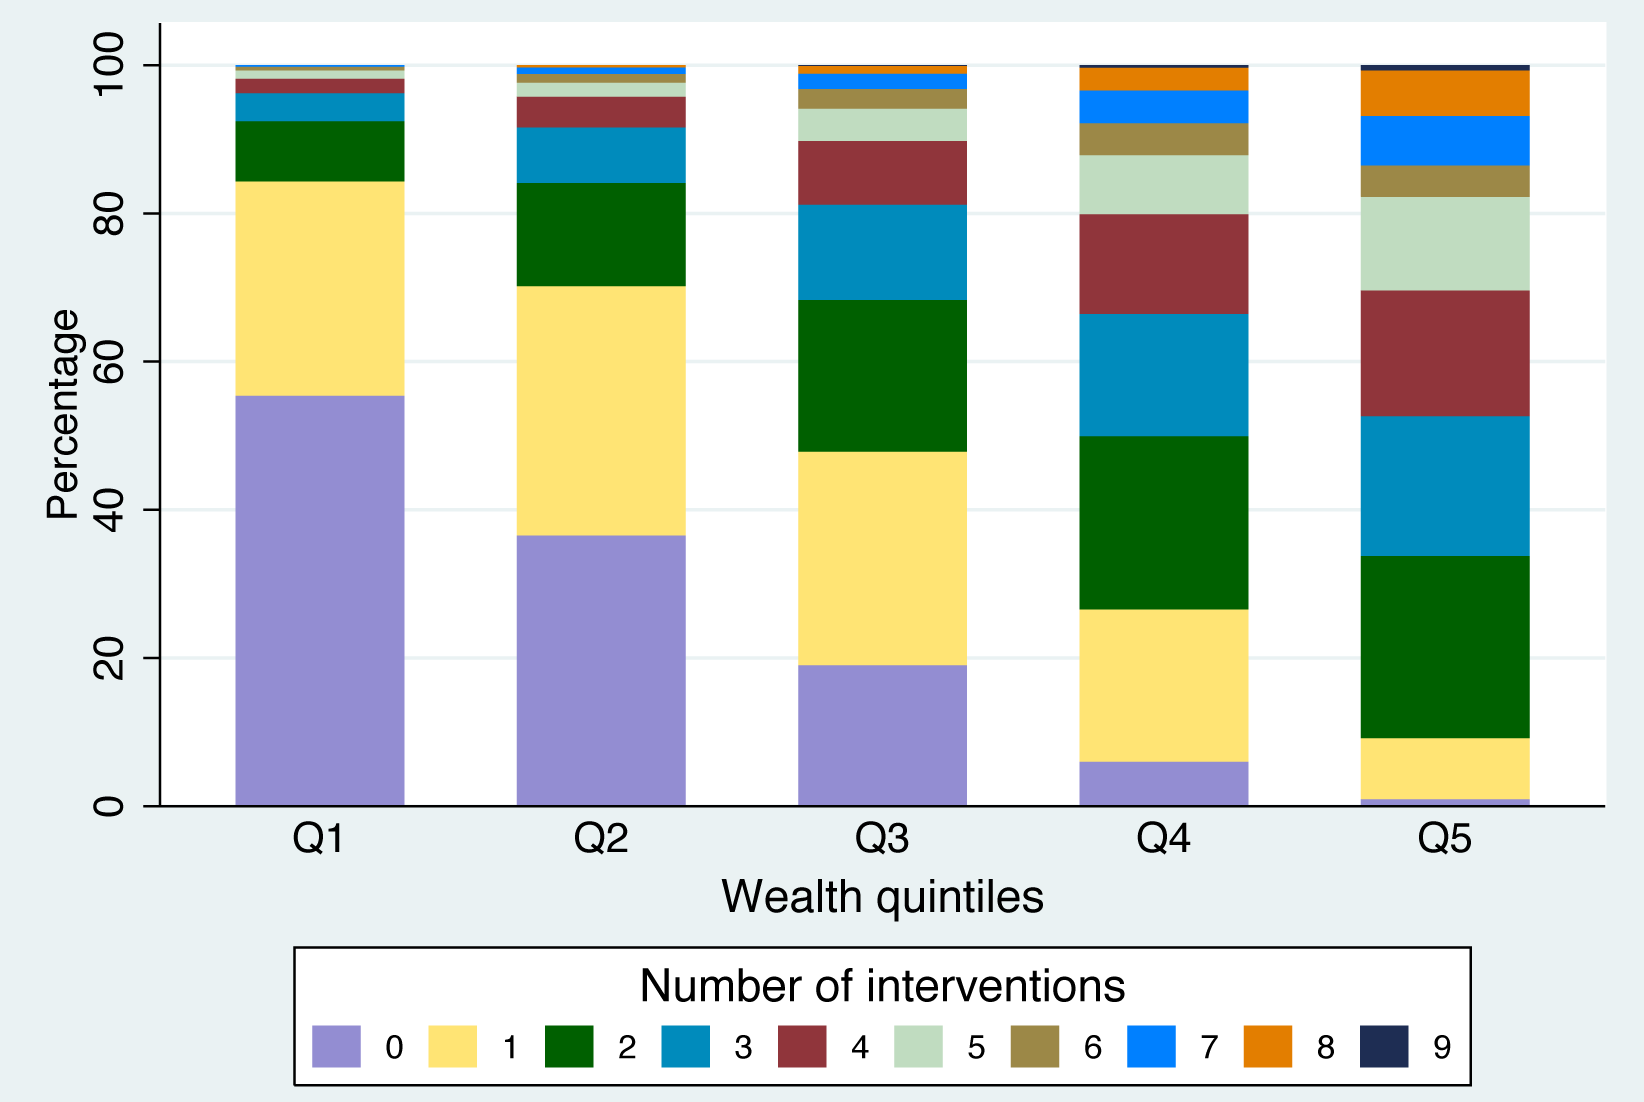 Co-coverage of nine preventive interventions for Nigeria (DHS 2008), by wealth quintiles.